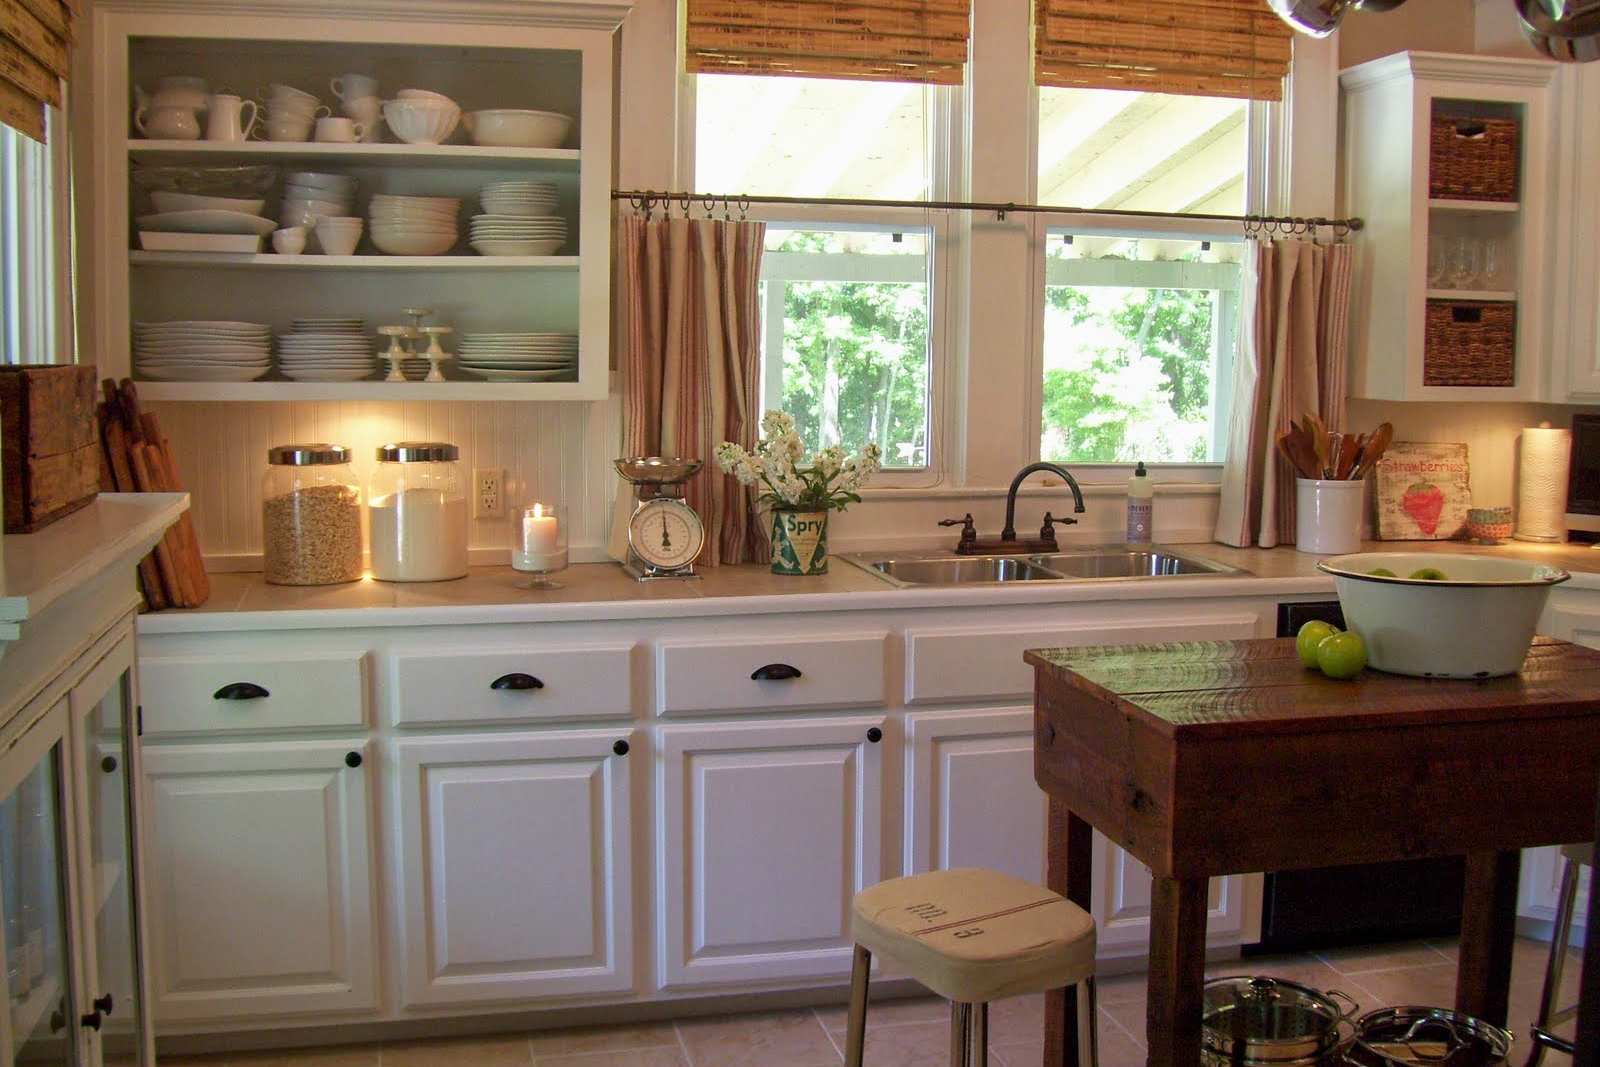 remodeling a kitchen do it yourself kitchen remodel. Interior Design Ideas. Home Design Ideas